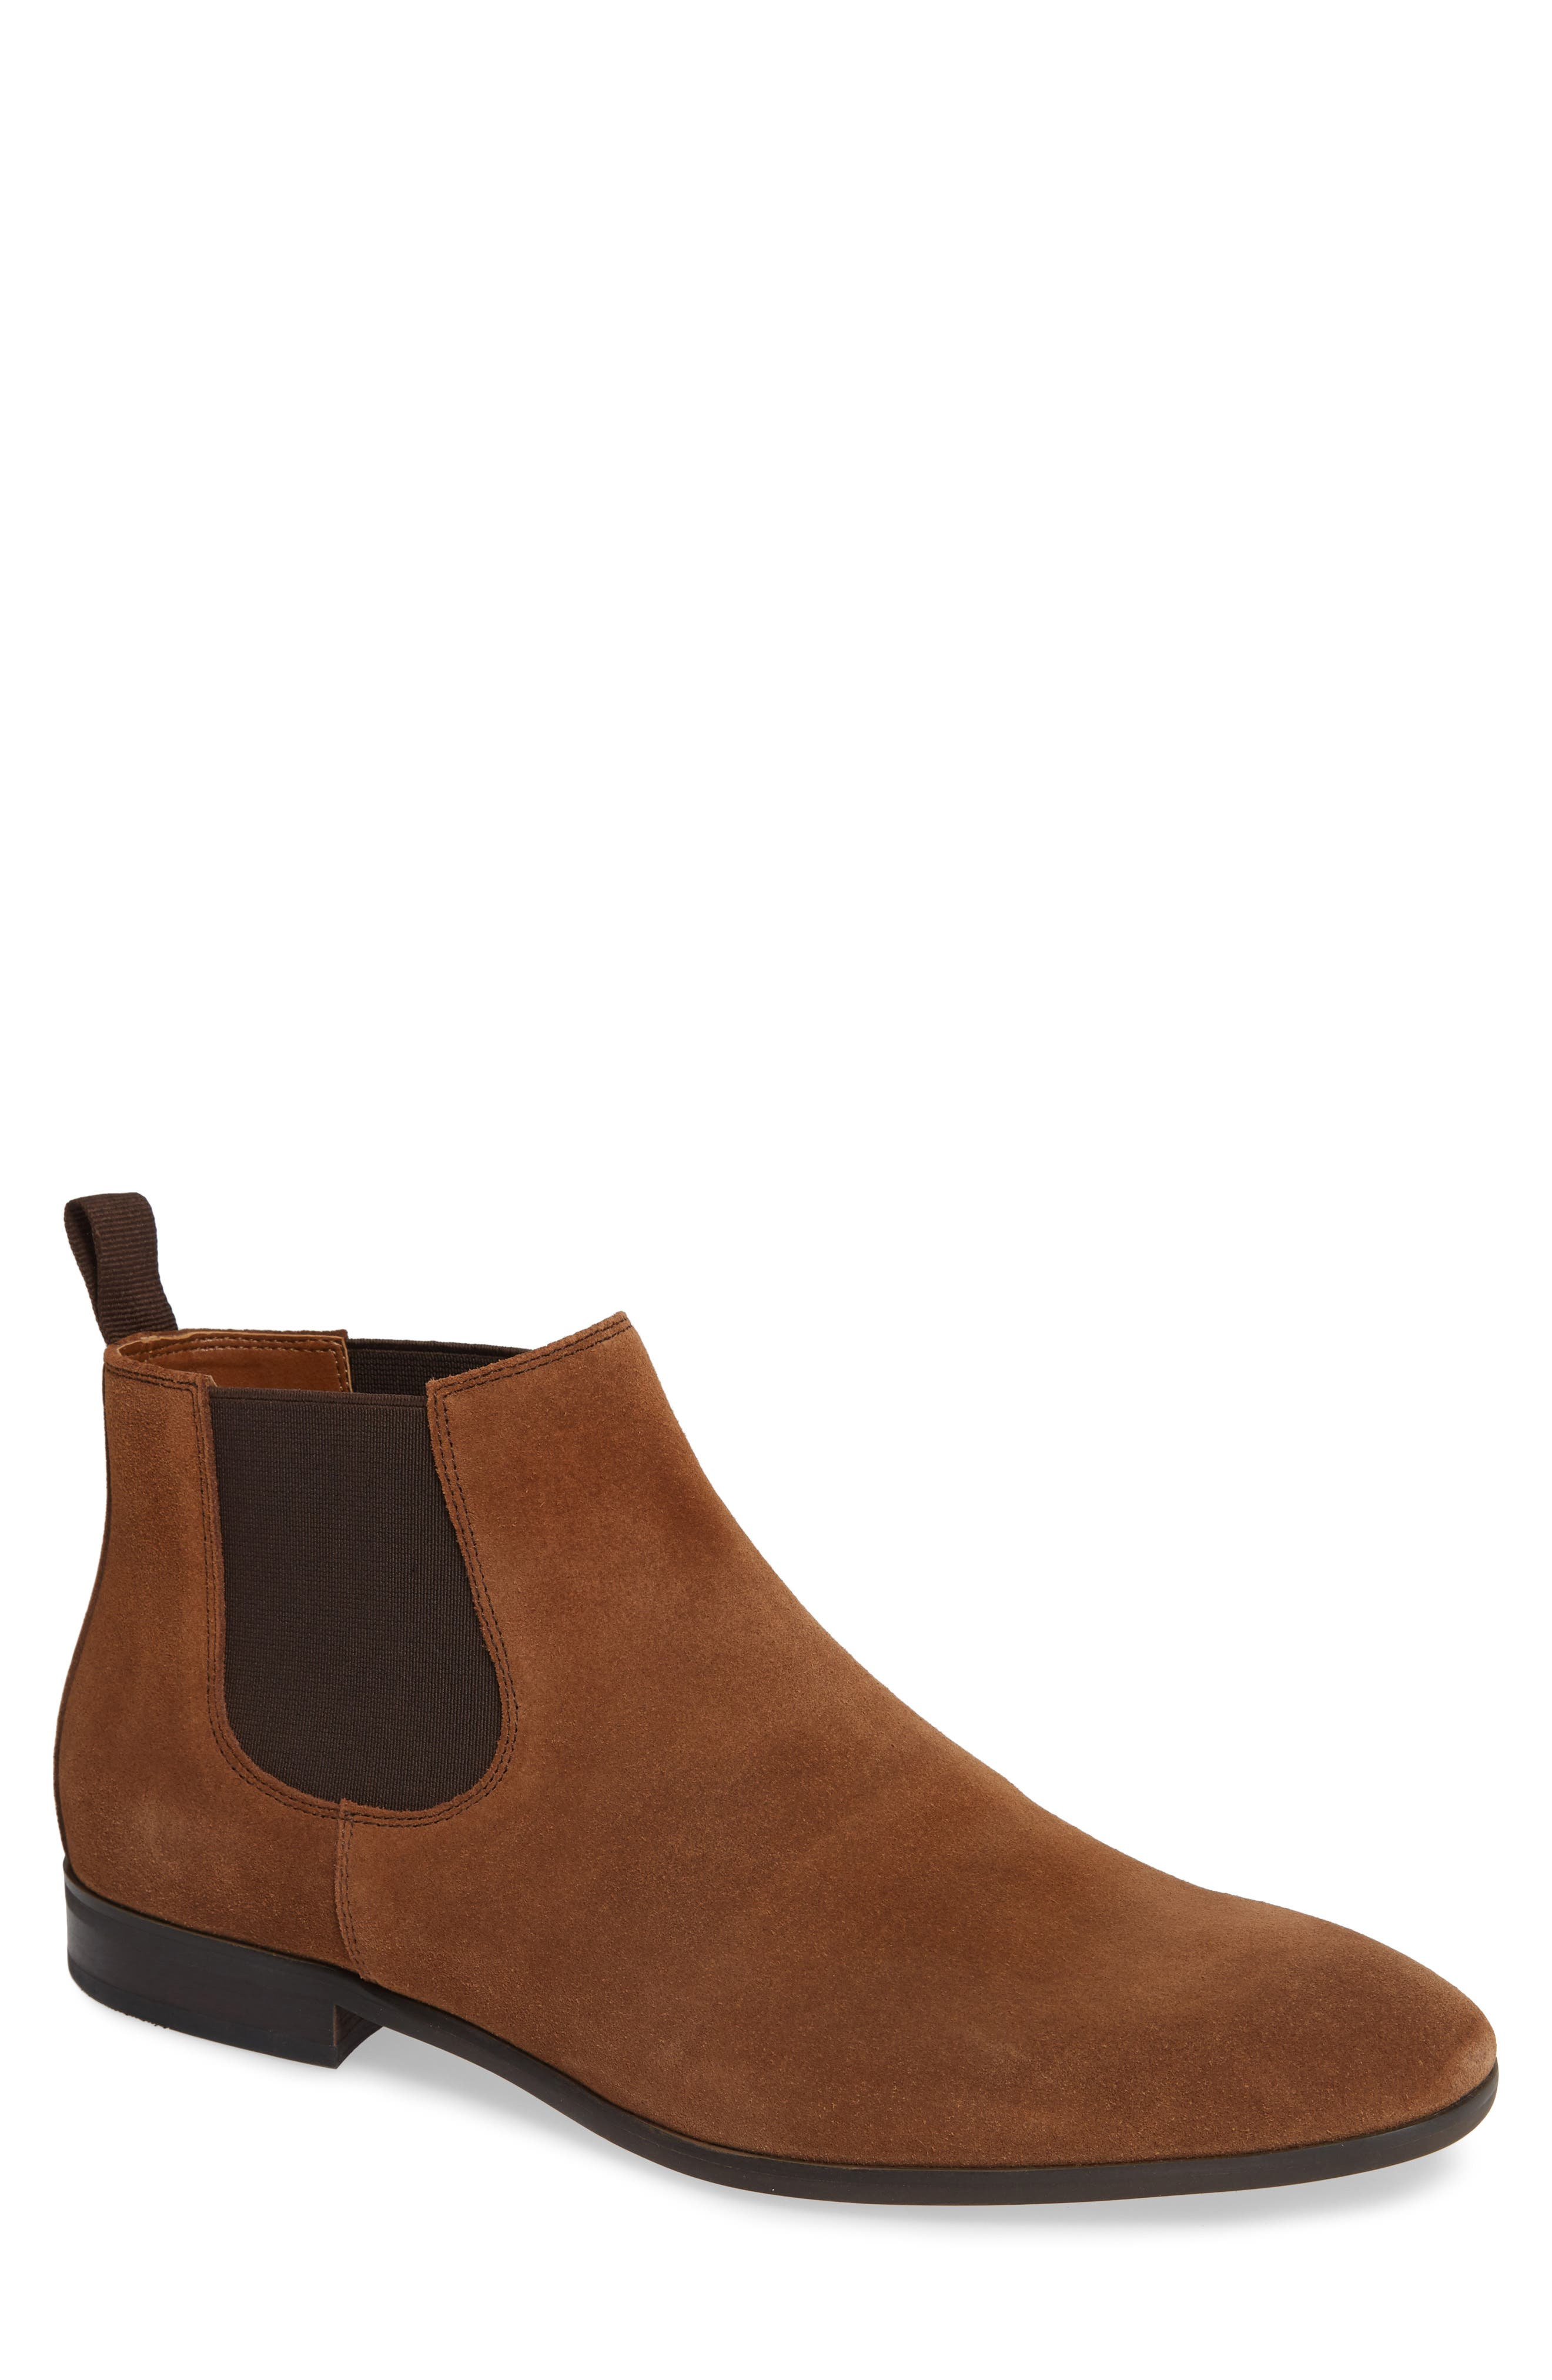 Edward Chelsea Boot,                             Main thumbnail 1, color,                             CHESTNUT SUEDE